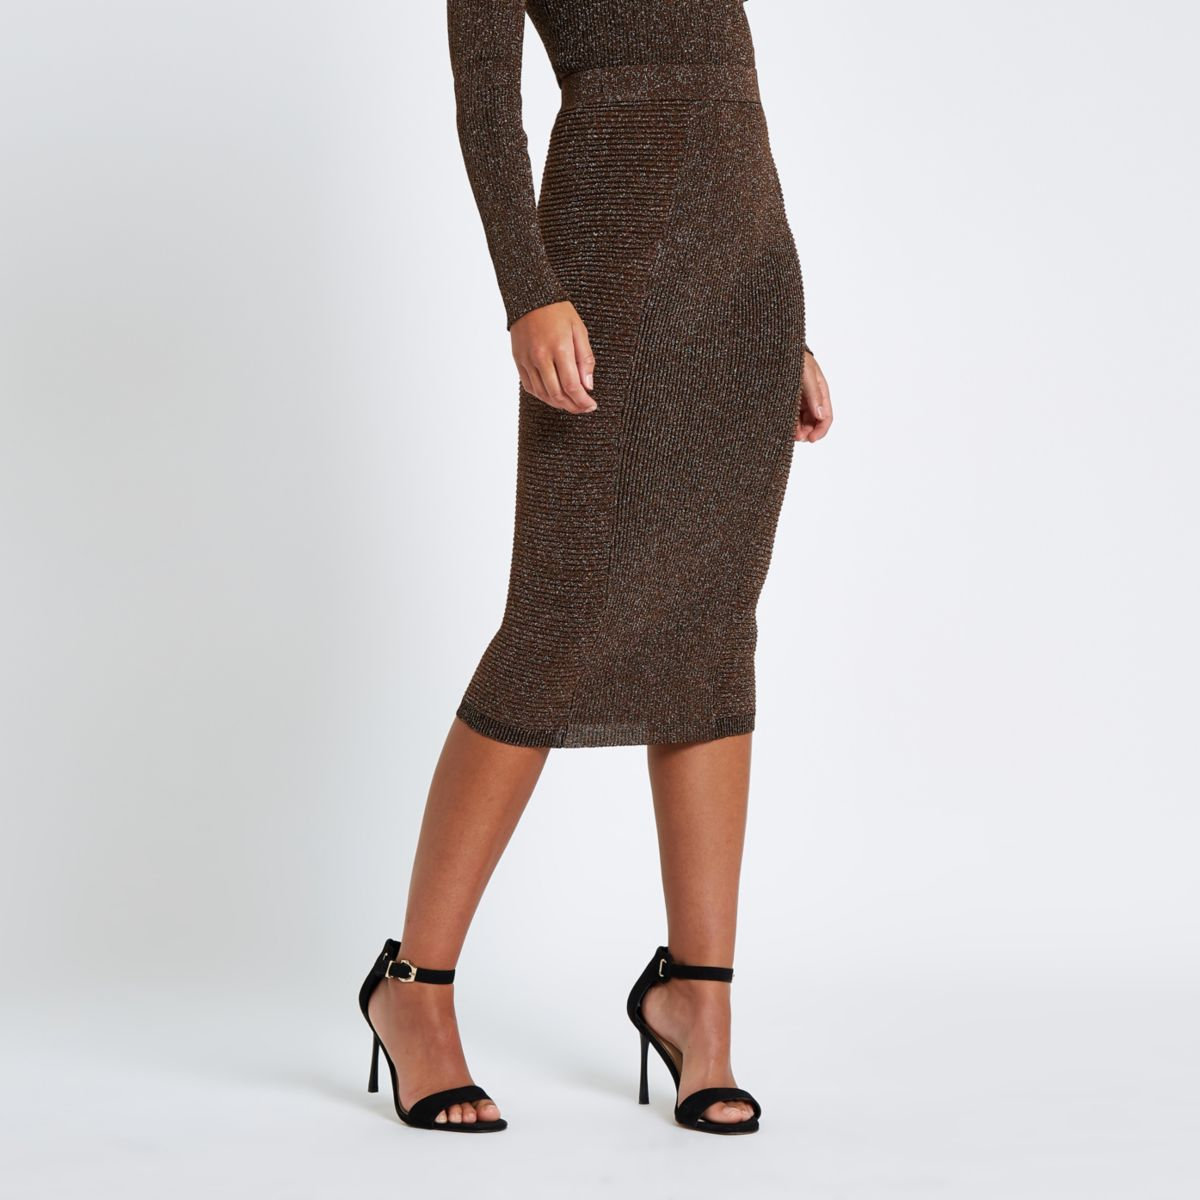 Brown metallic pencil skirt